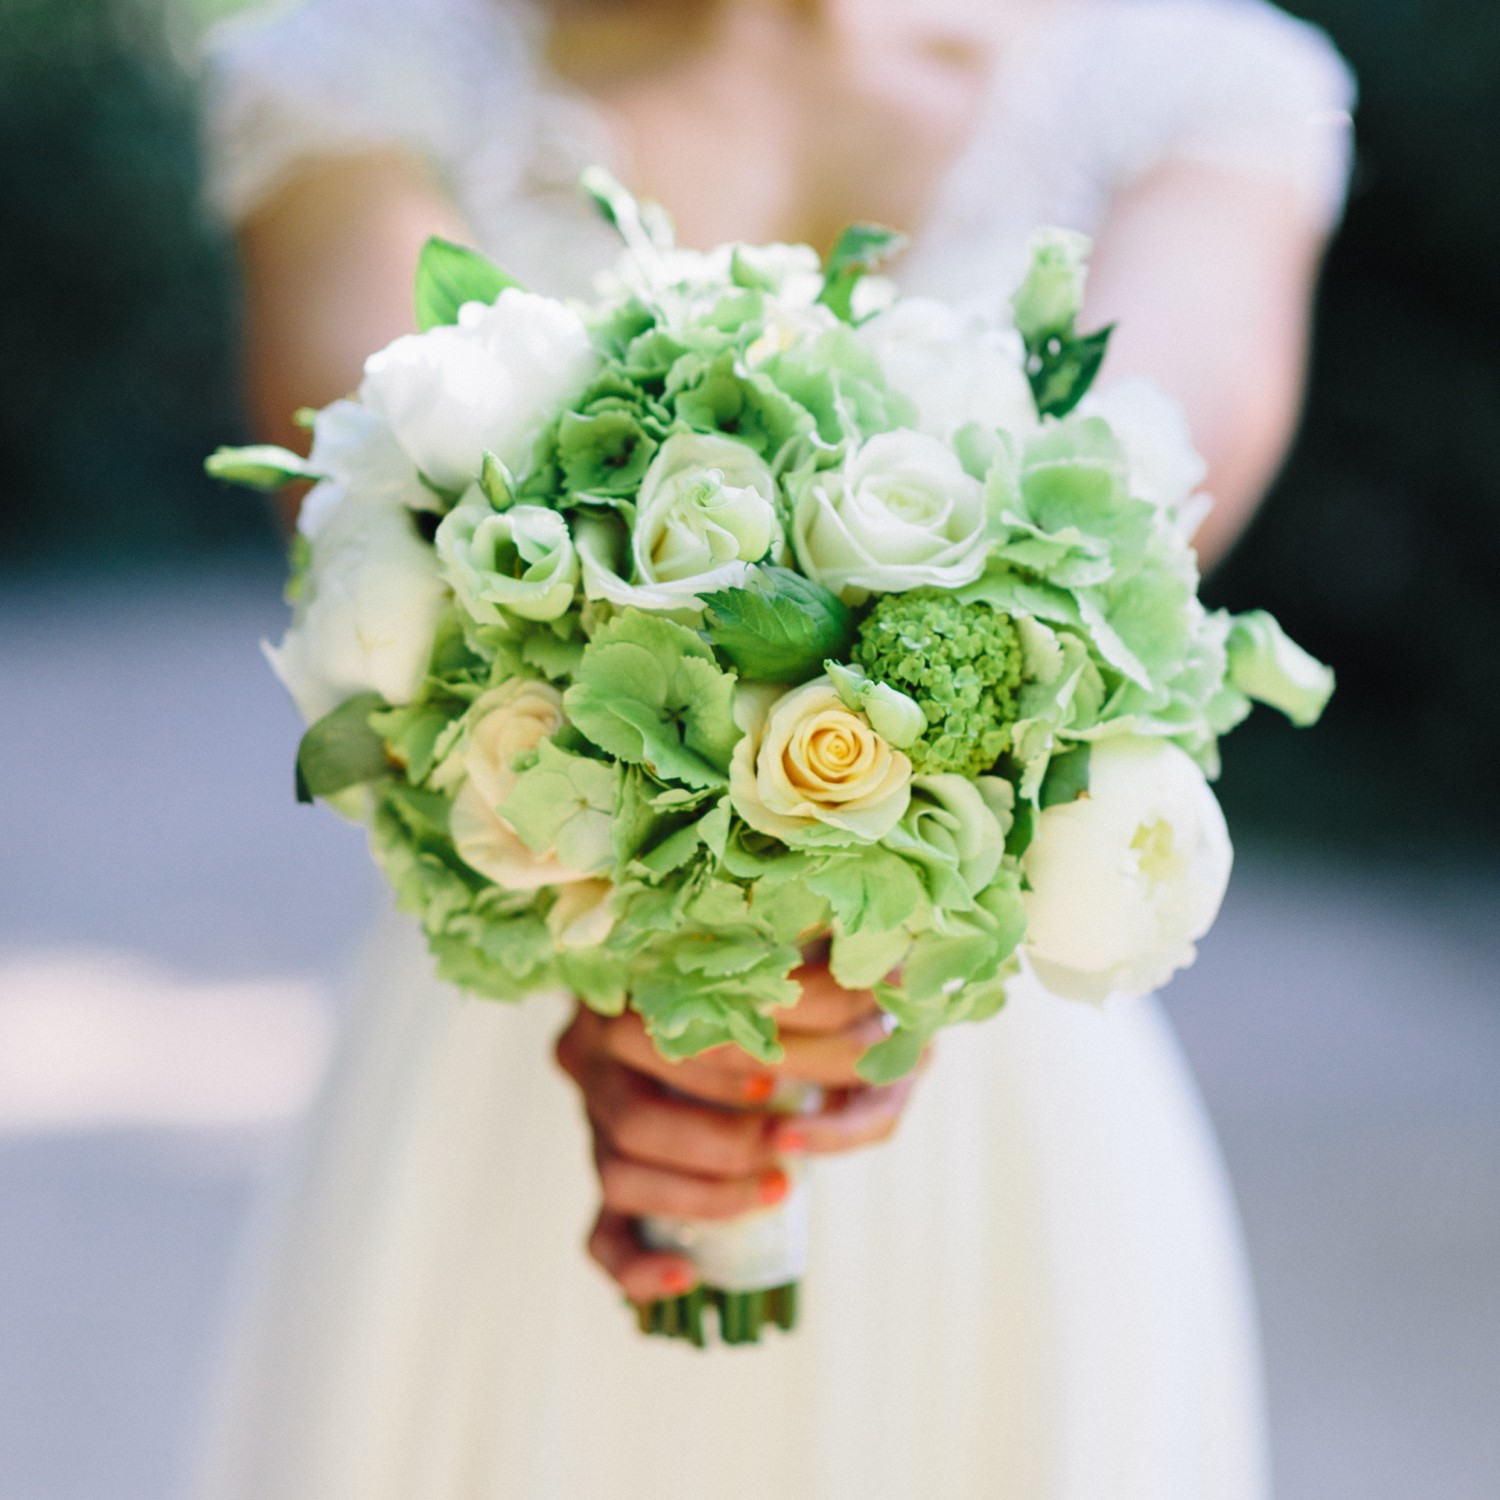 Catch These Bridal Bouquets